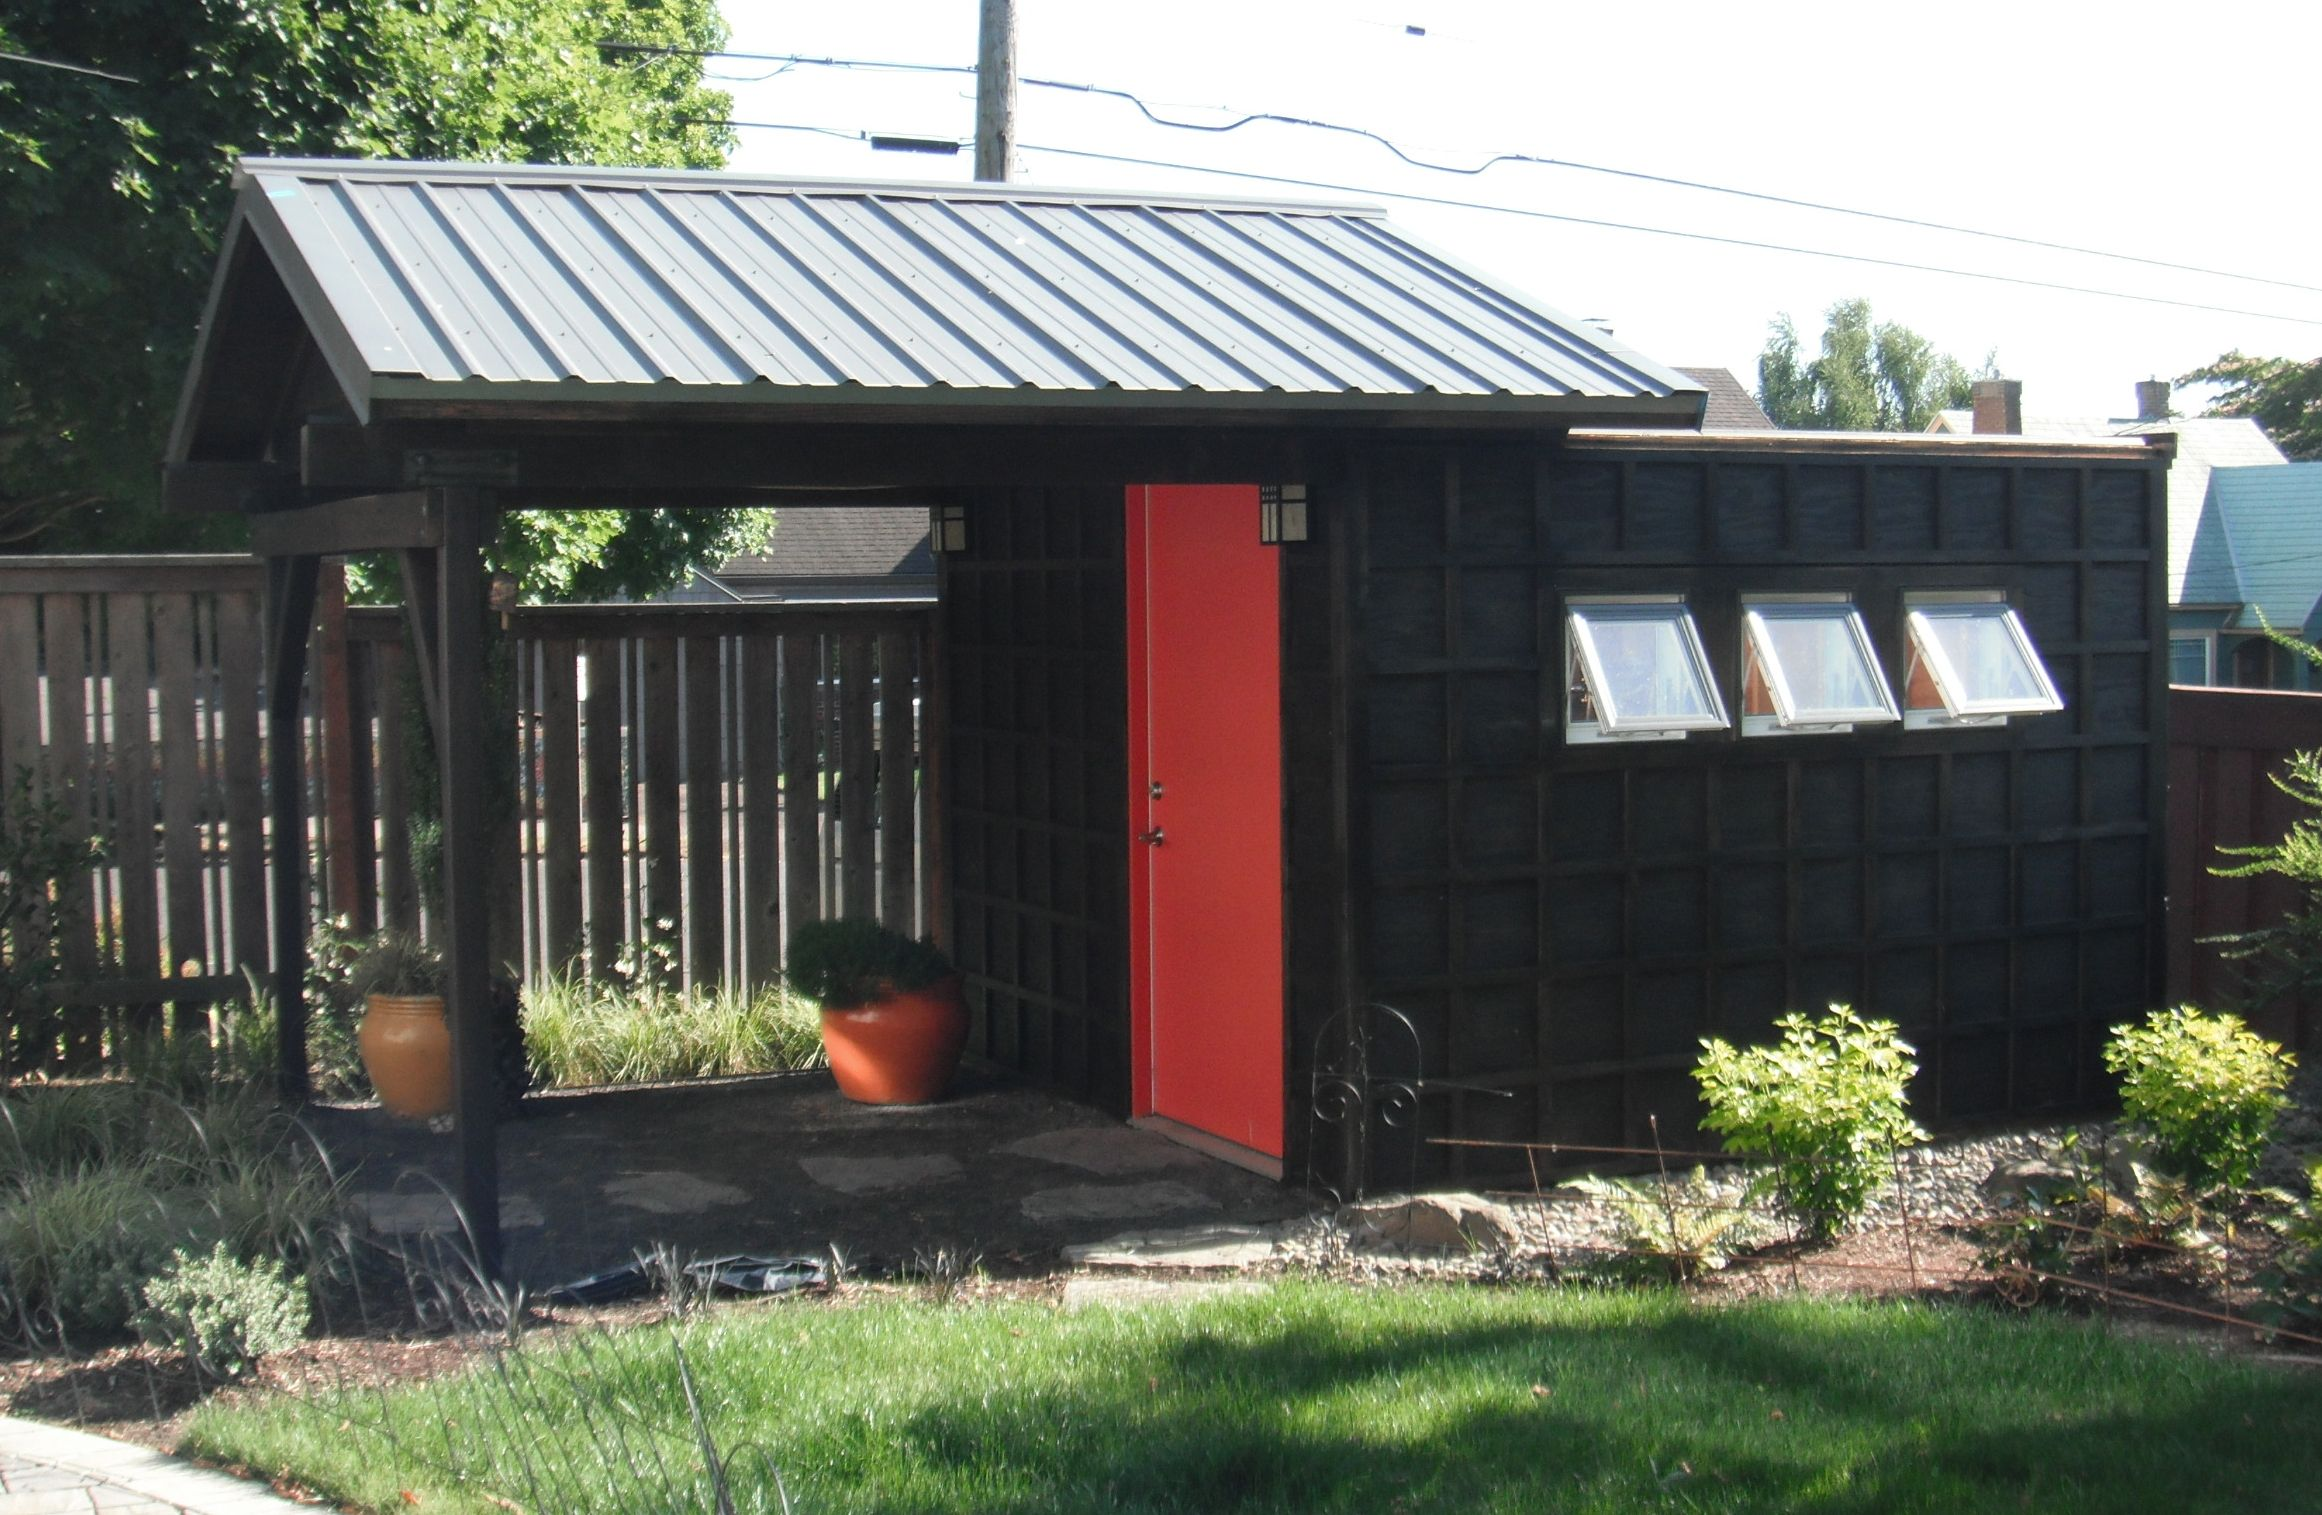 Japanese Garden Structures Backyard Office Shed The Exterior Has A Geometric Pattern